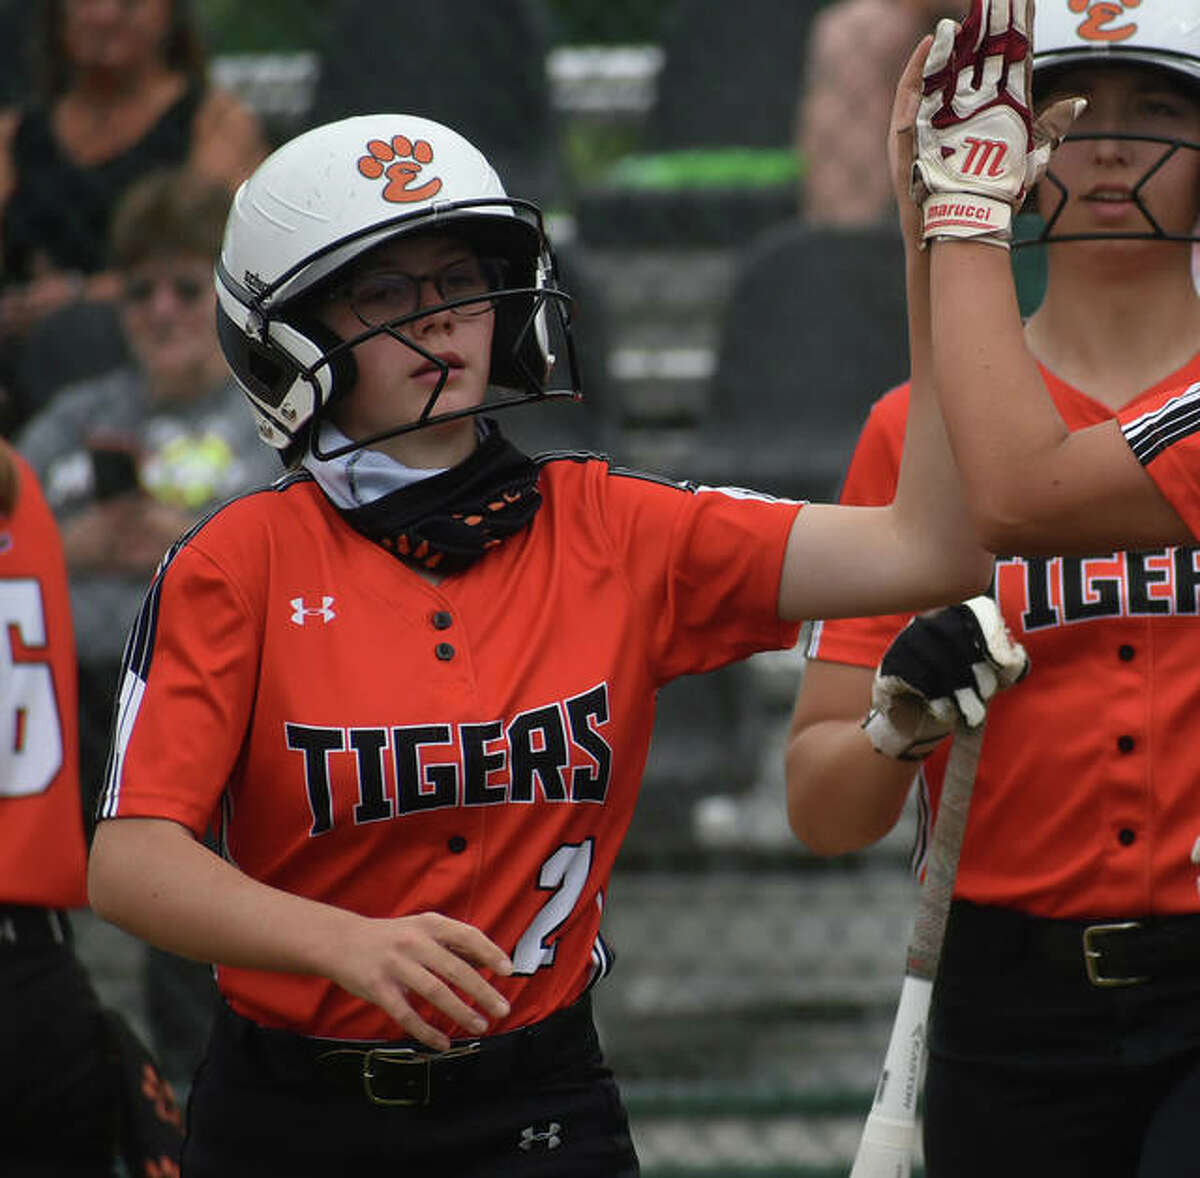 Edwardsville's Grace Blakemore is congratulated by a teammate after scoring in the second inning.